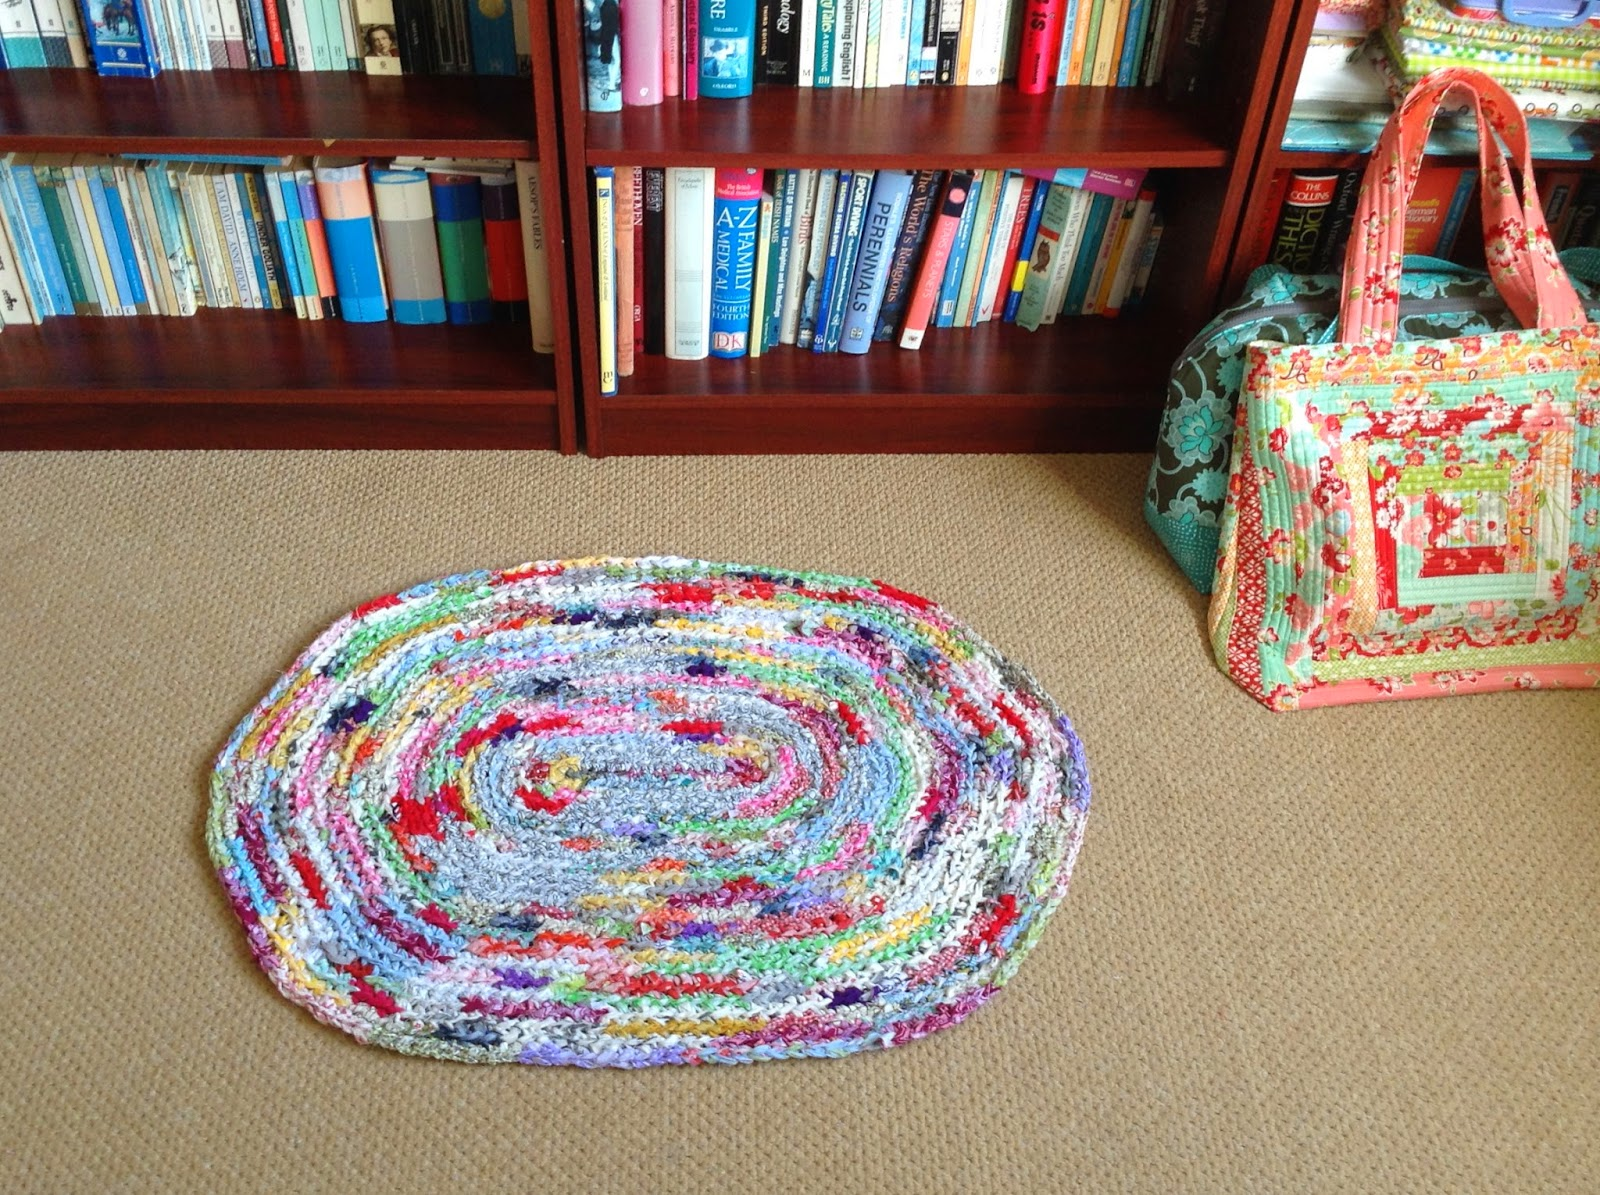 Sew Me: Oval Crocheted Rag Rug - finish and a pattern